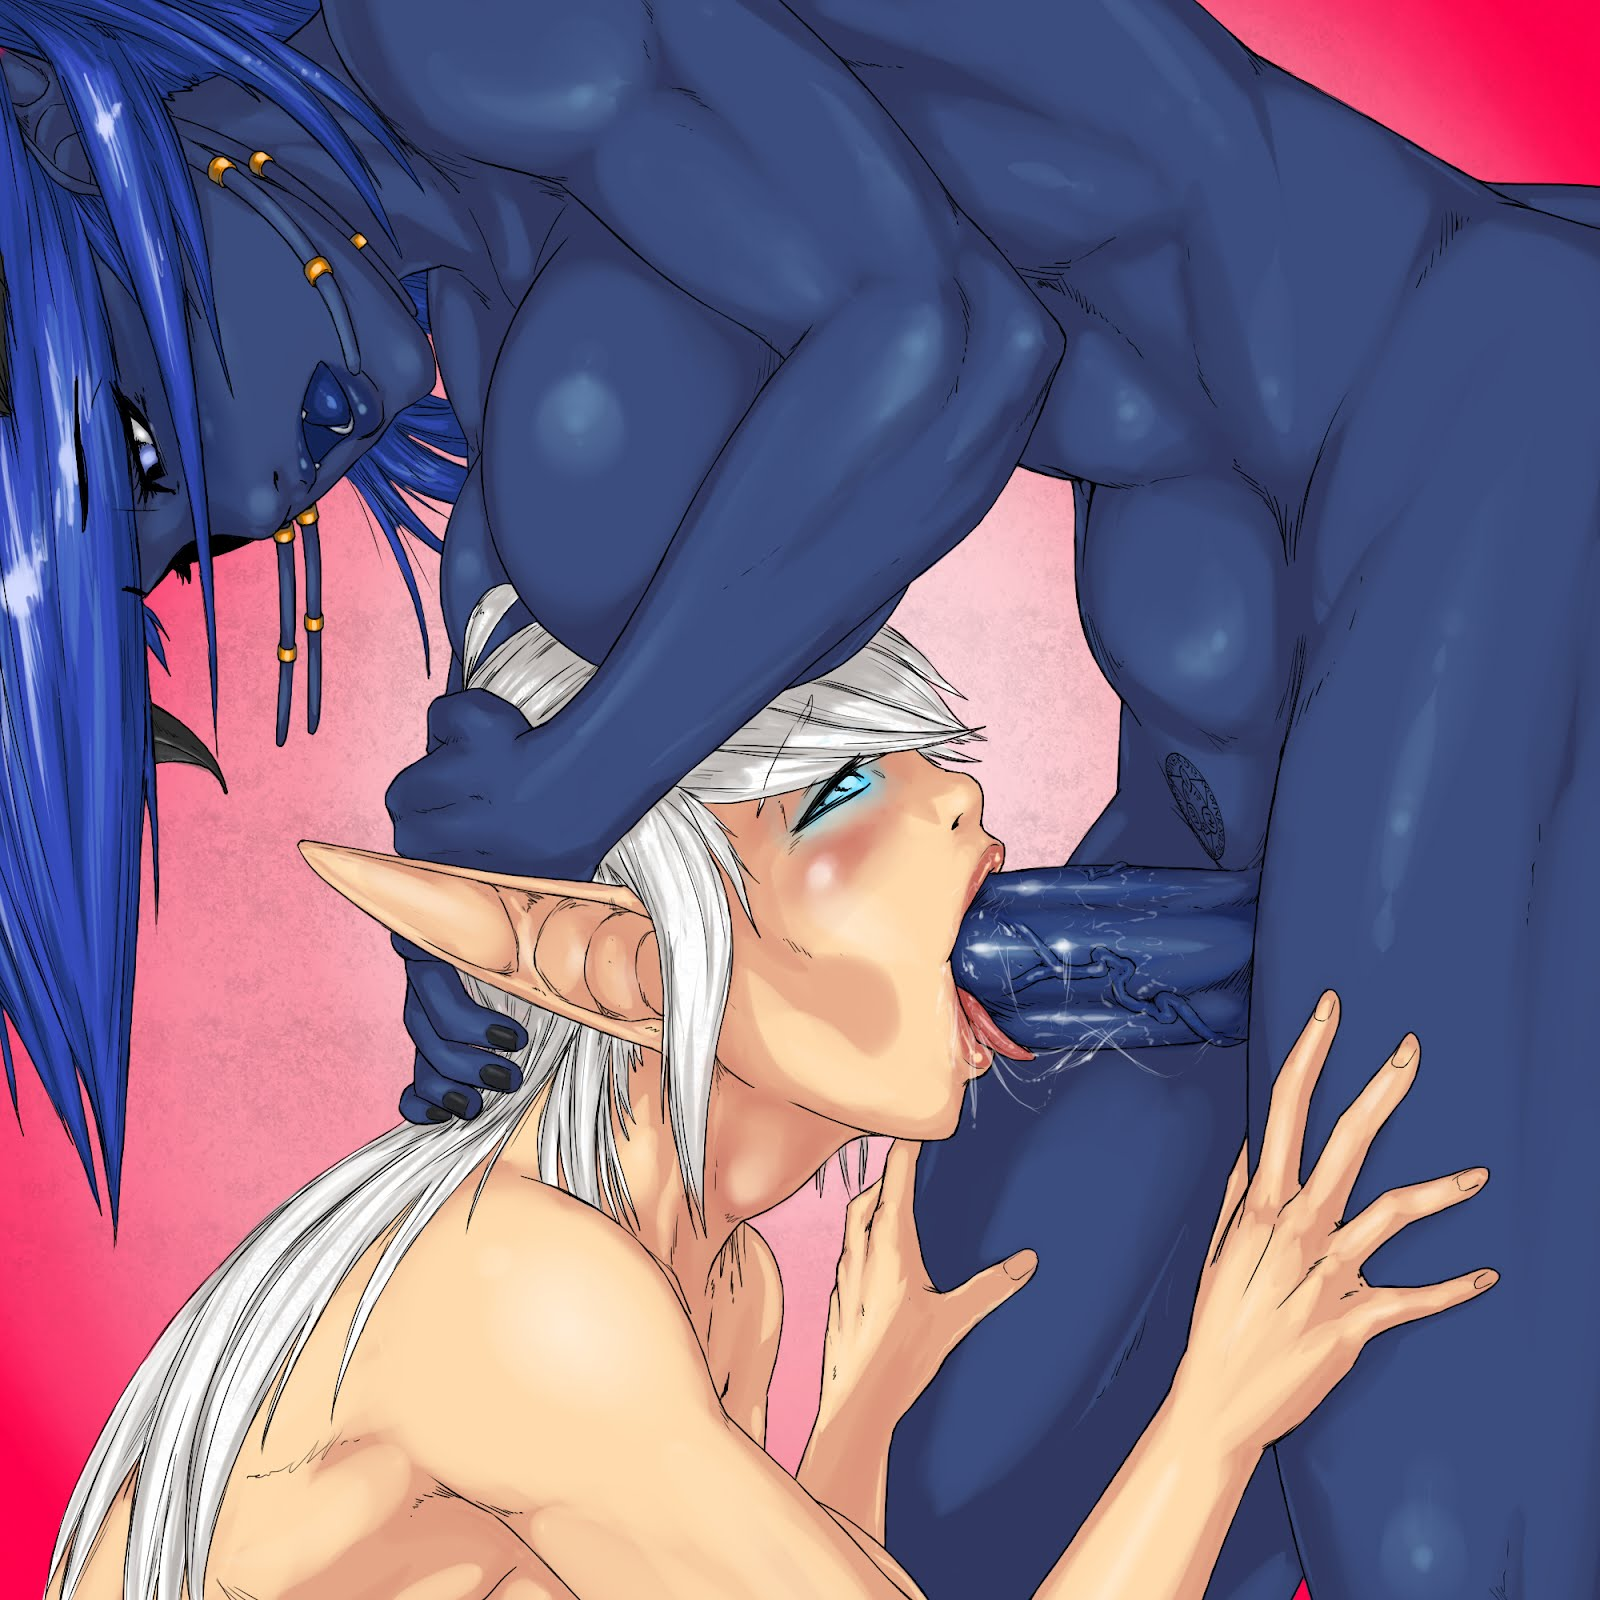 Porn anime elf squirt nude videos